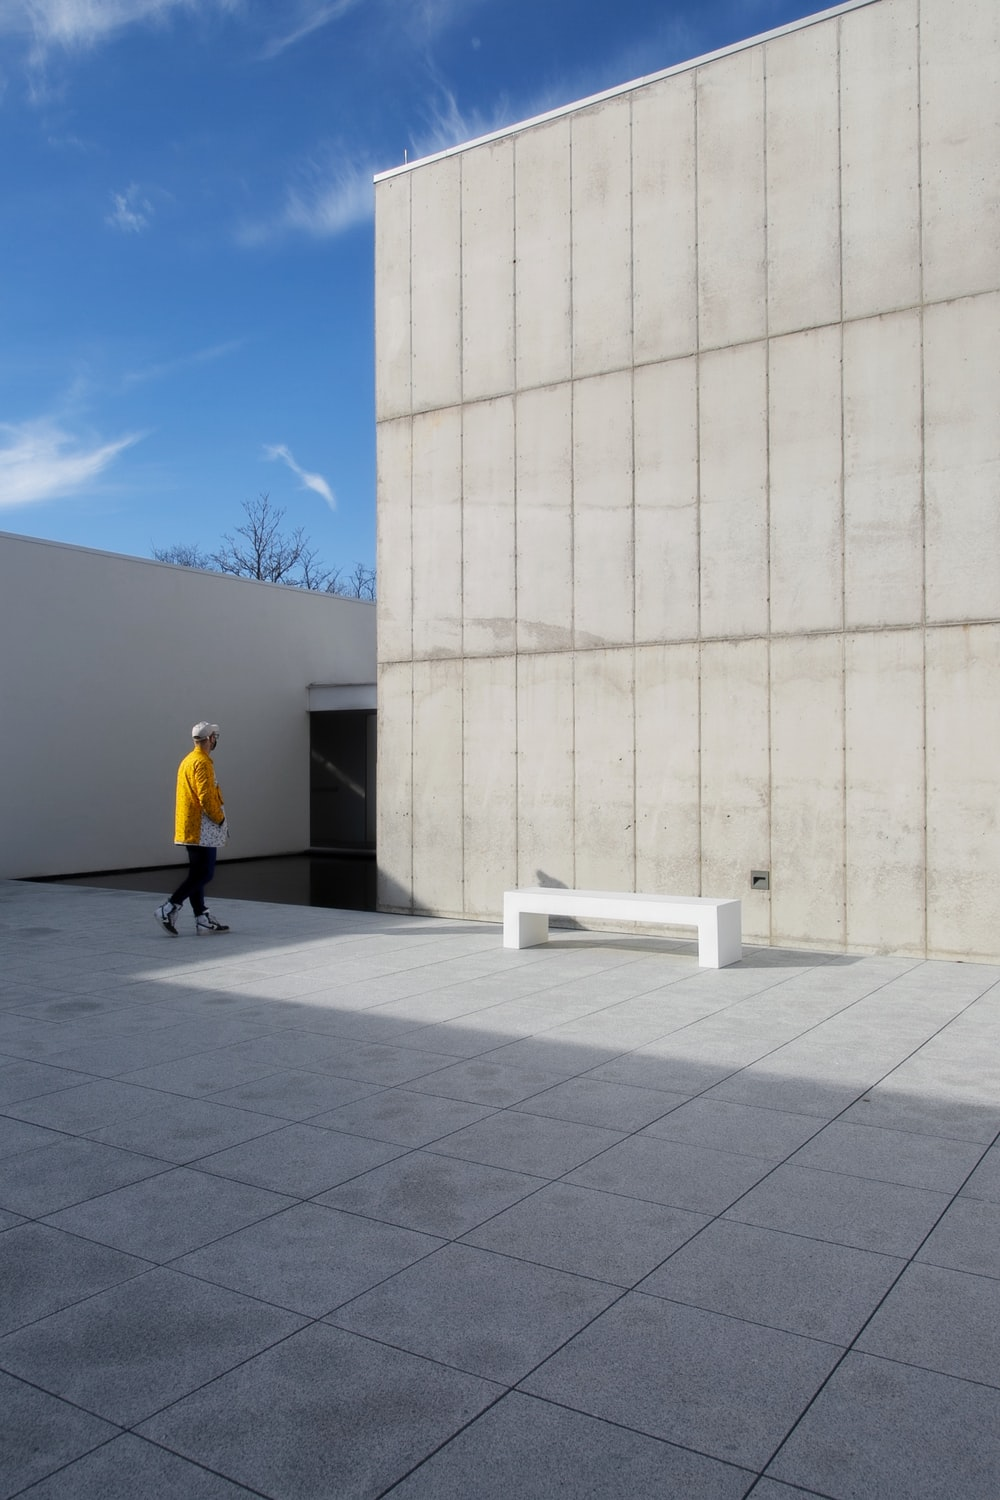 man in yellow jacket and black pants walking on gray concrete floor during daytime